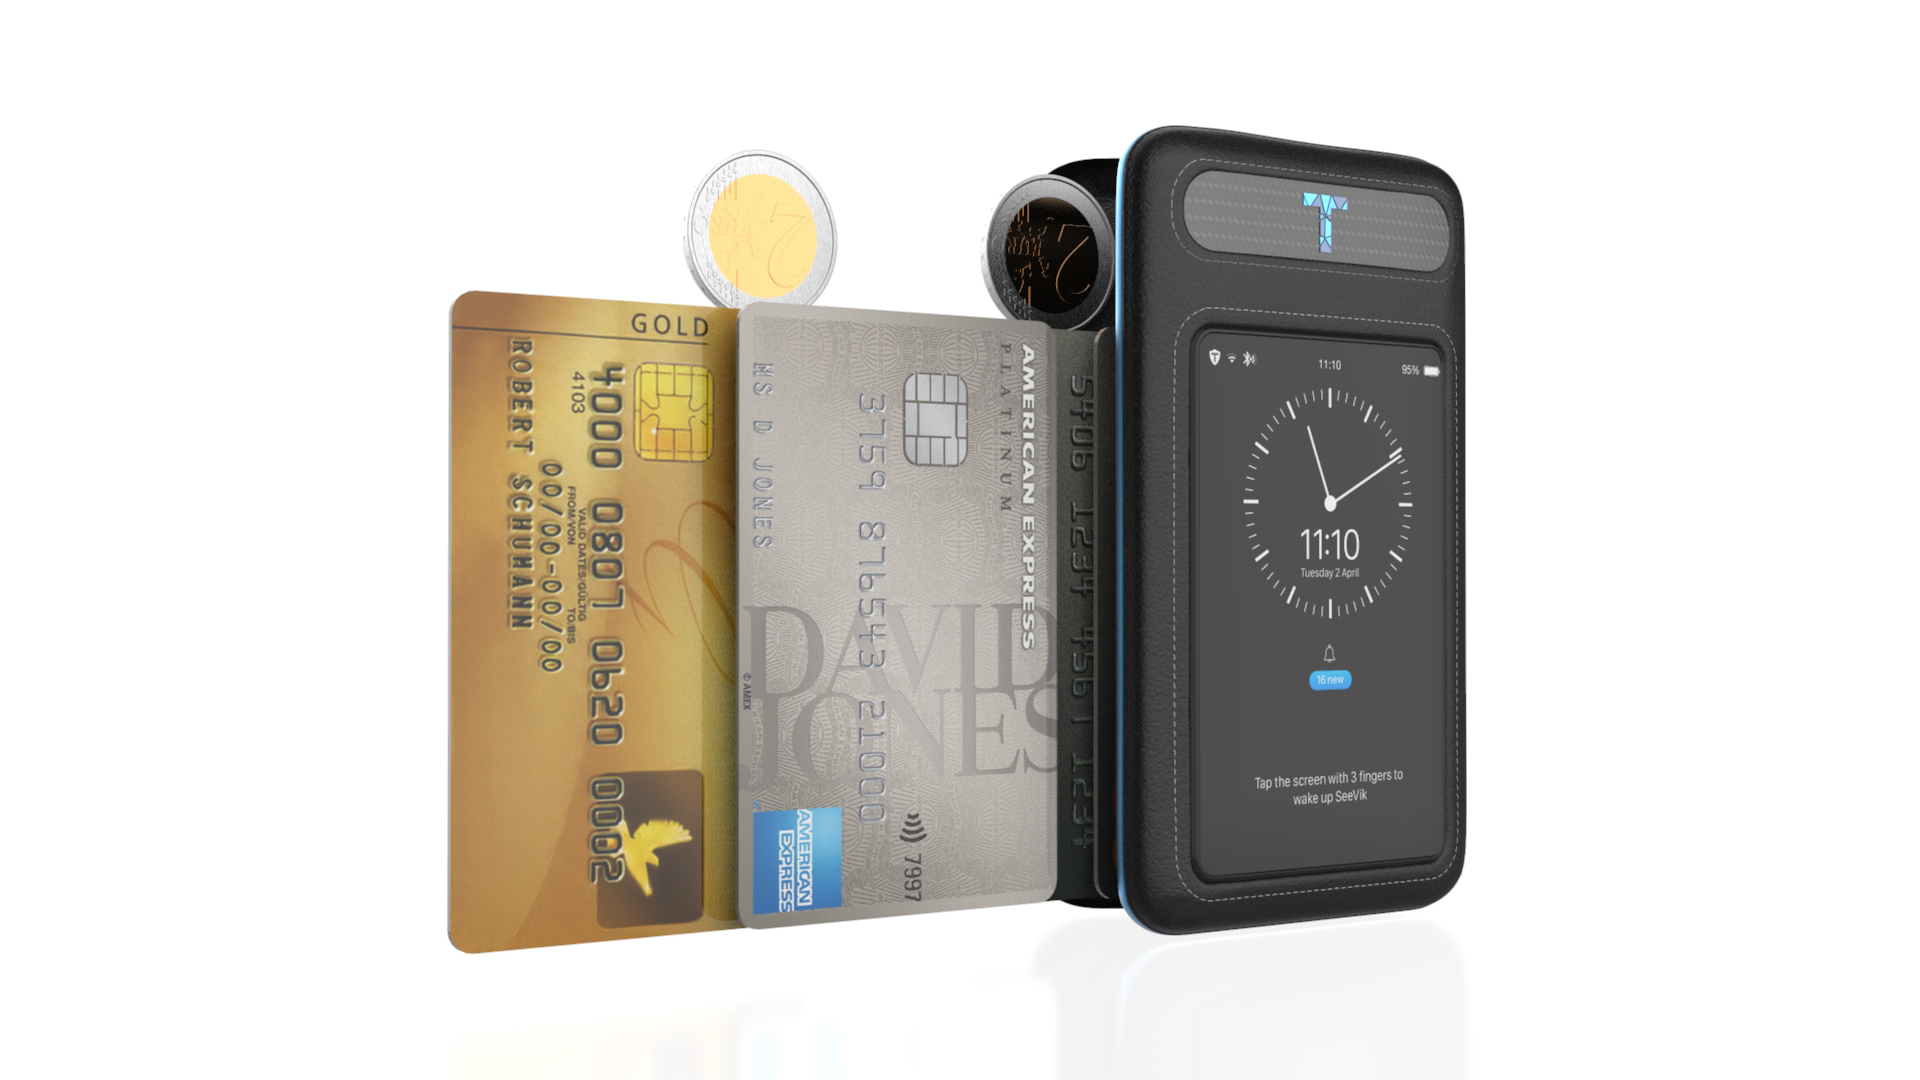 SeeVik WalletAn ultra-secure digital wallet - Holds the SeeVik Pod, and up to 6 cards/ IDs and 15 cash bills. Optimized for ergonomics and durability. Hand-crafted leather woven into carbon fiber. RFID blocking.